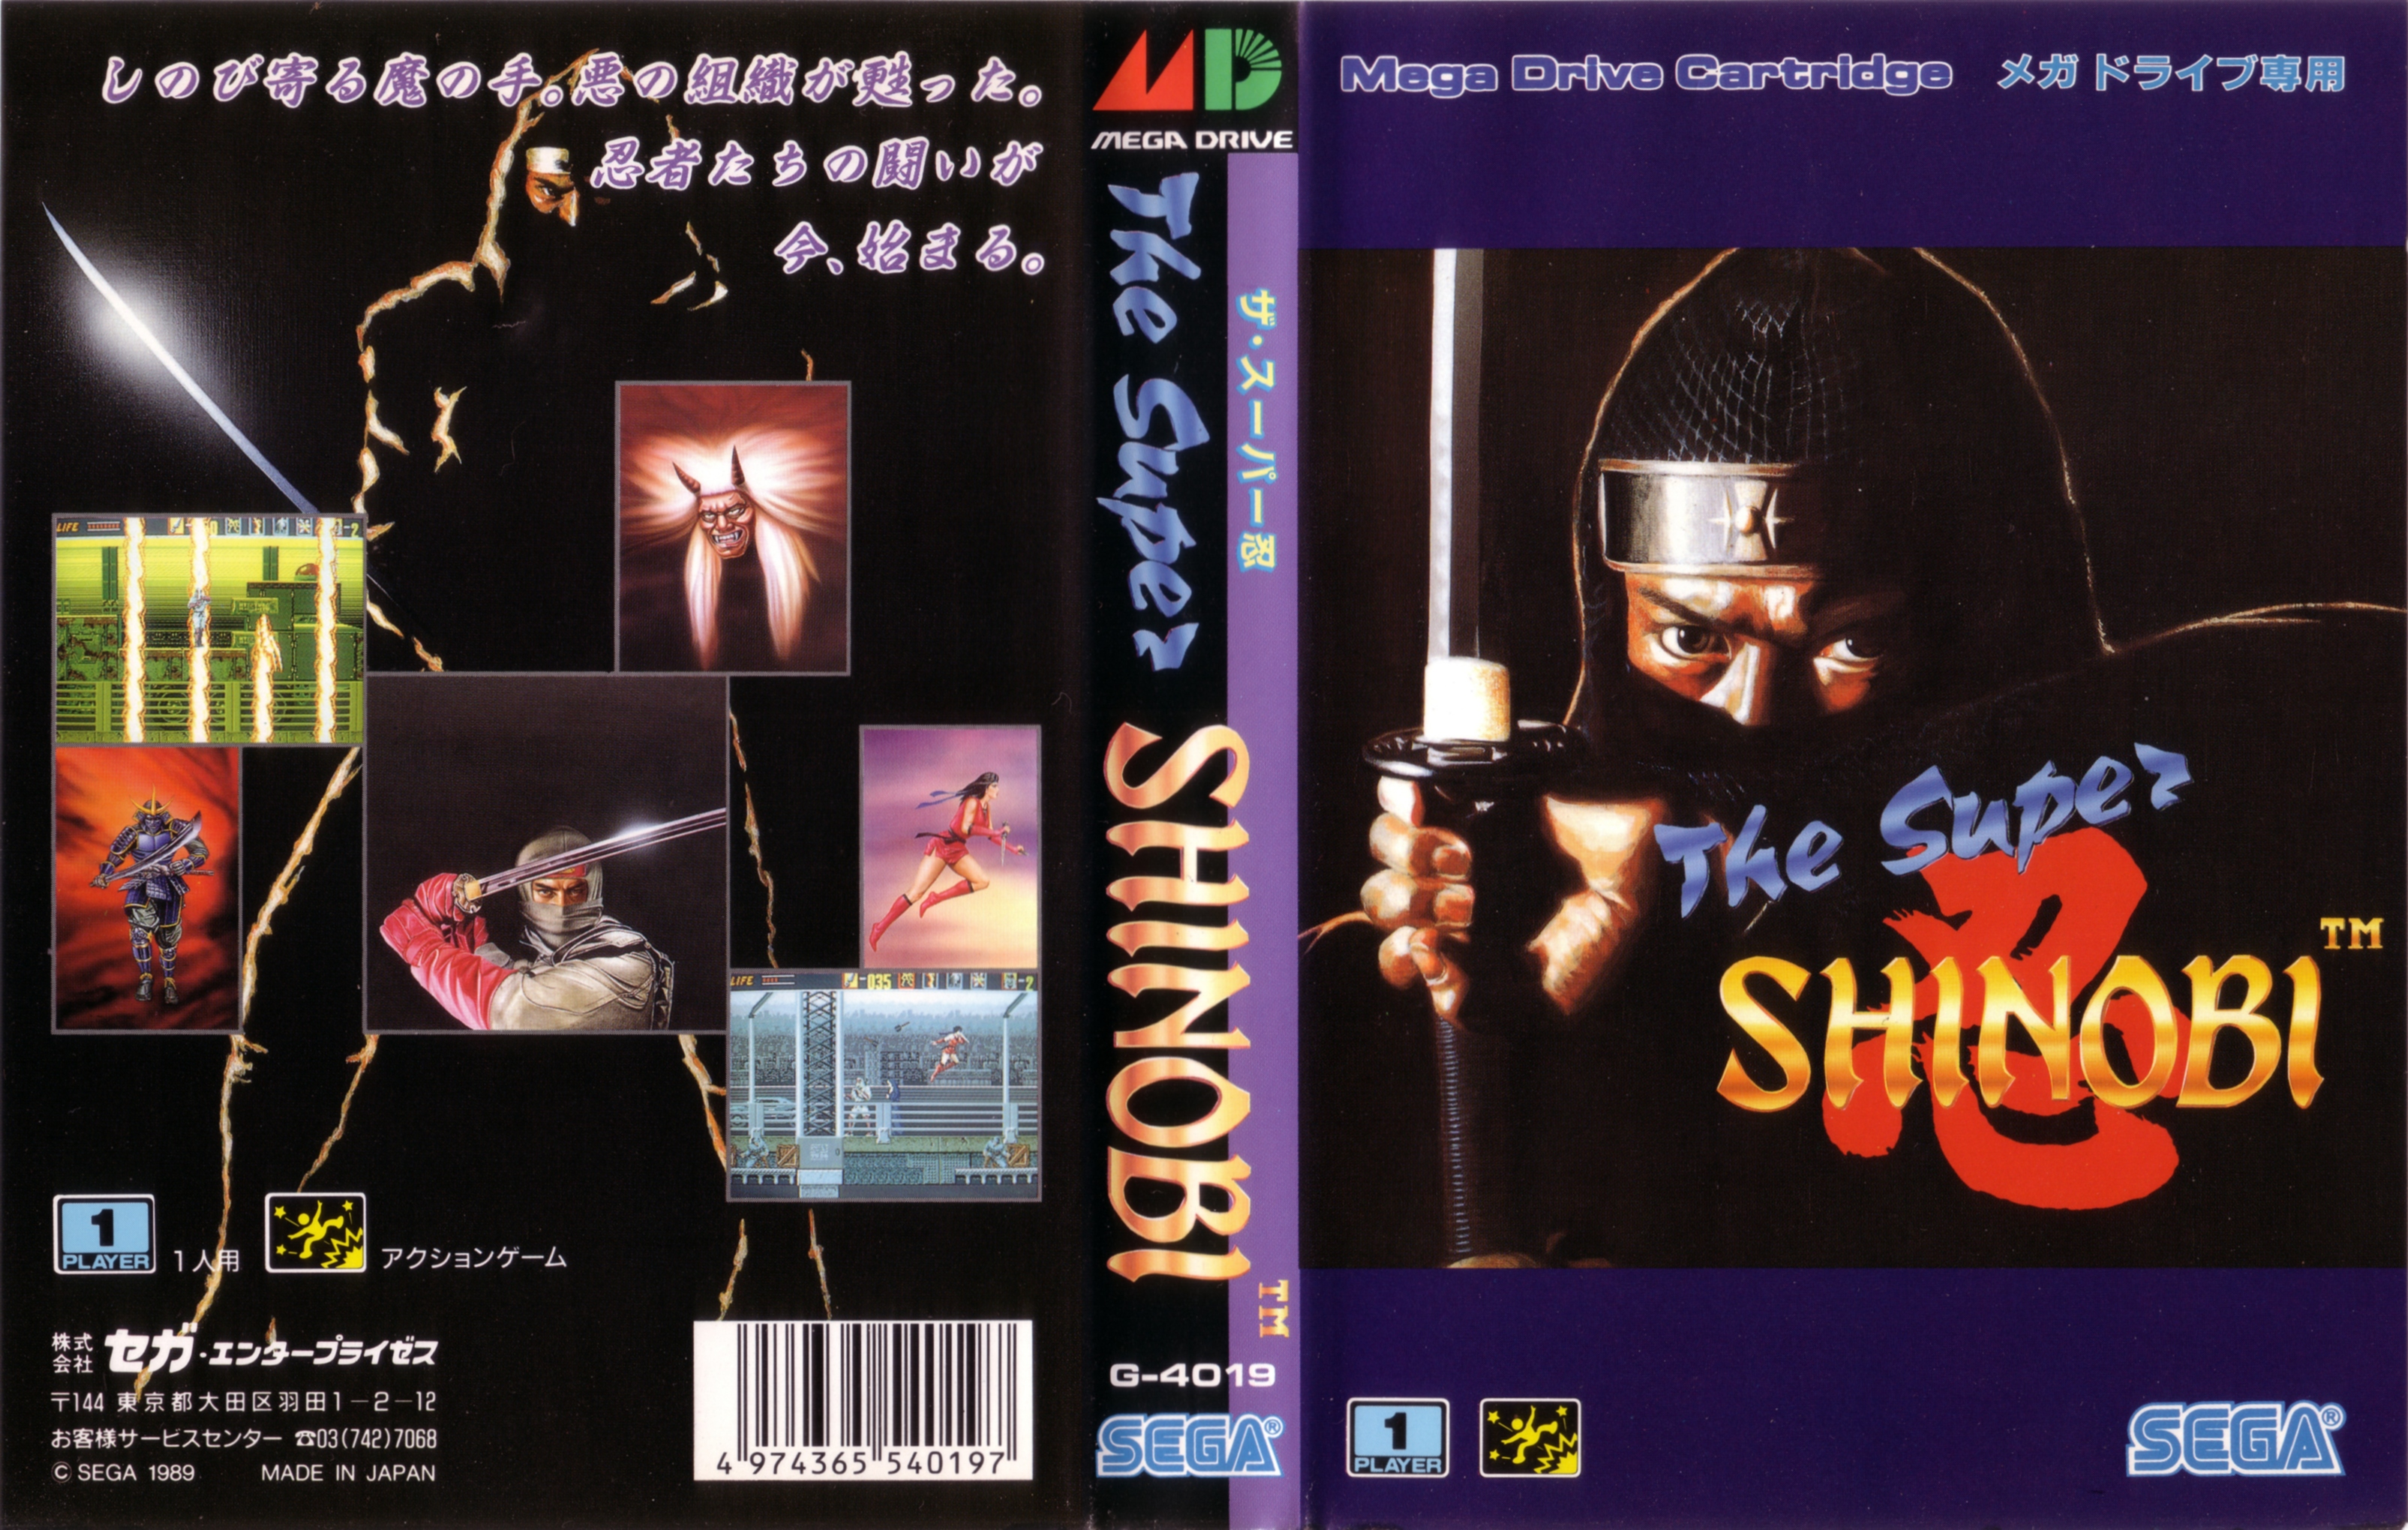 Revenge Of Shinobi Sega Genesis 1989 Sega Does